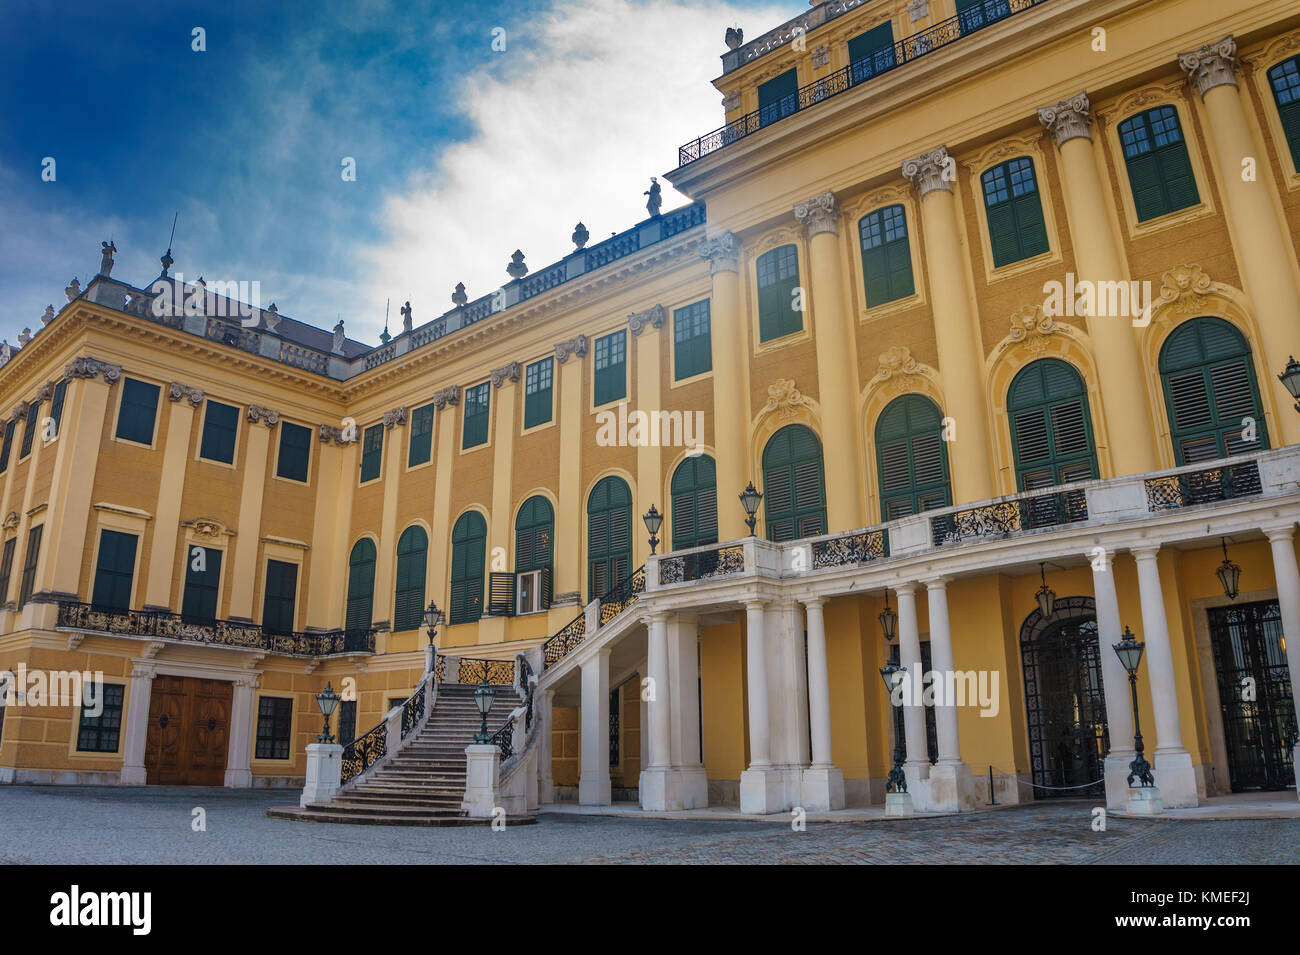 The famous Schonbrunn Palace Vienna in Austria, Europe. - Stock Image